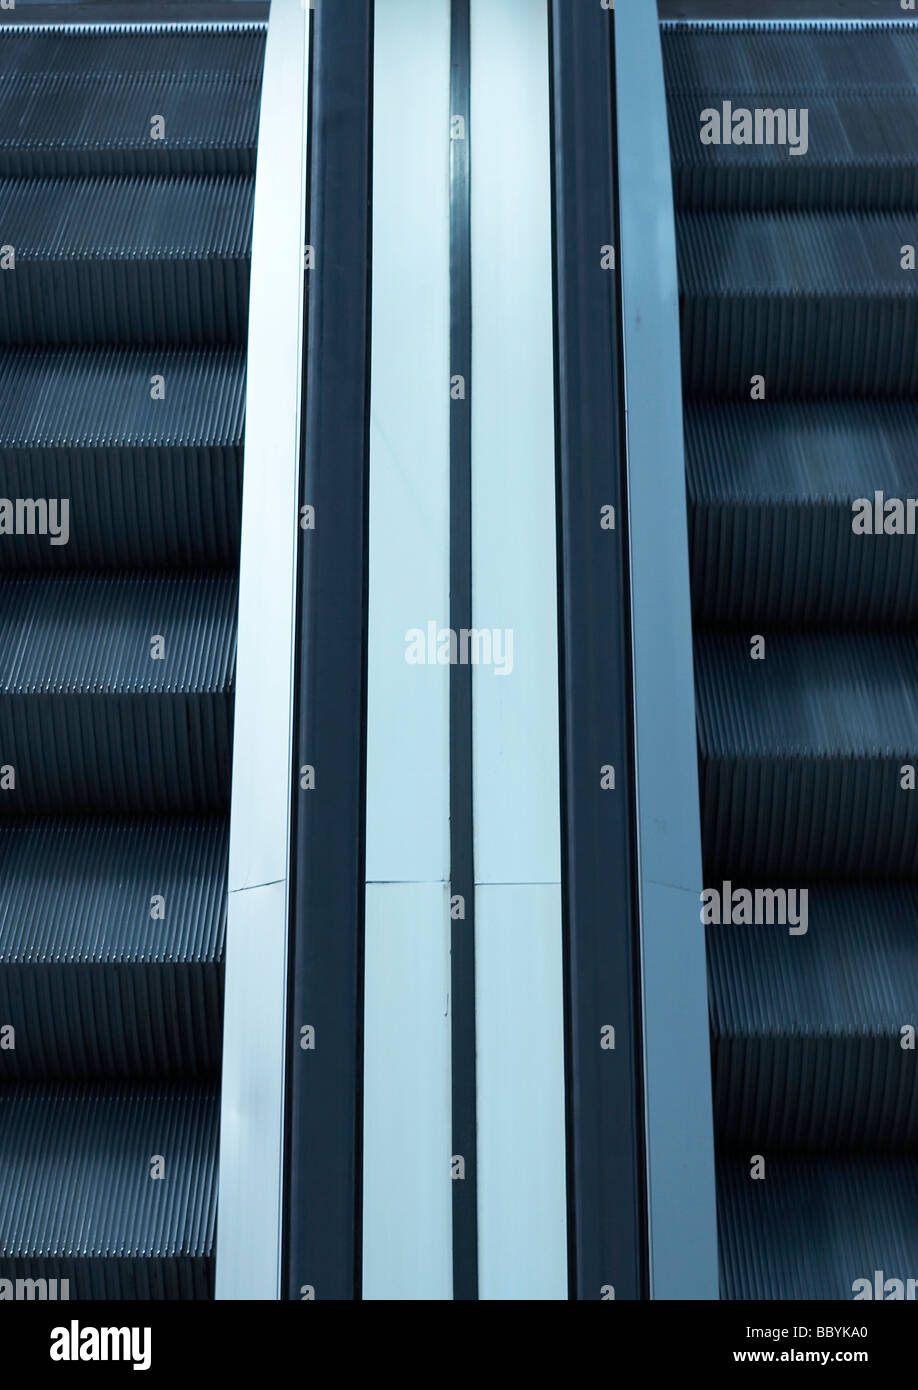 Semi-abstract image looking down on an escalator - Stock Image